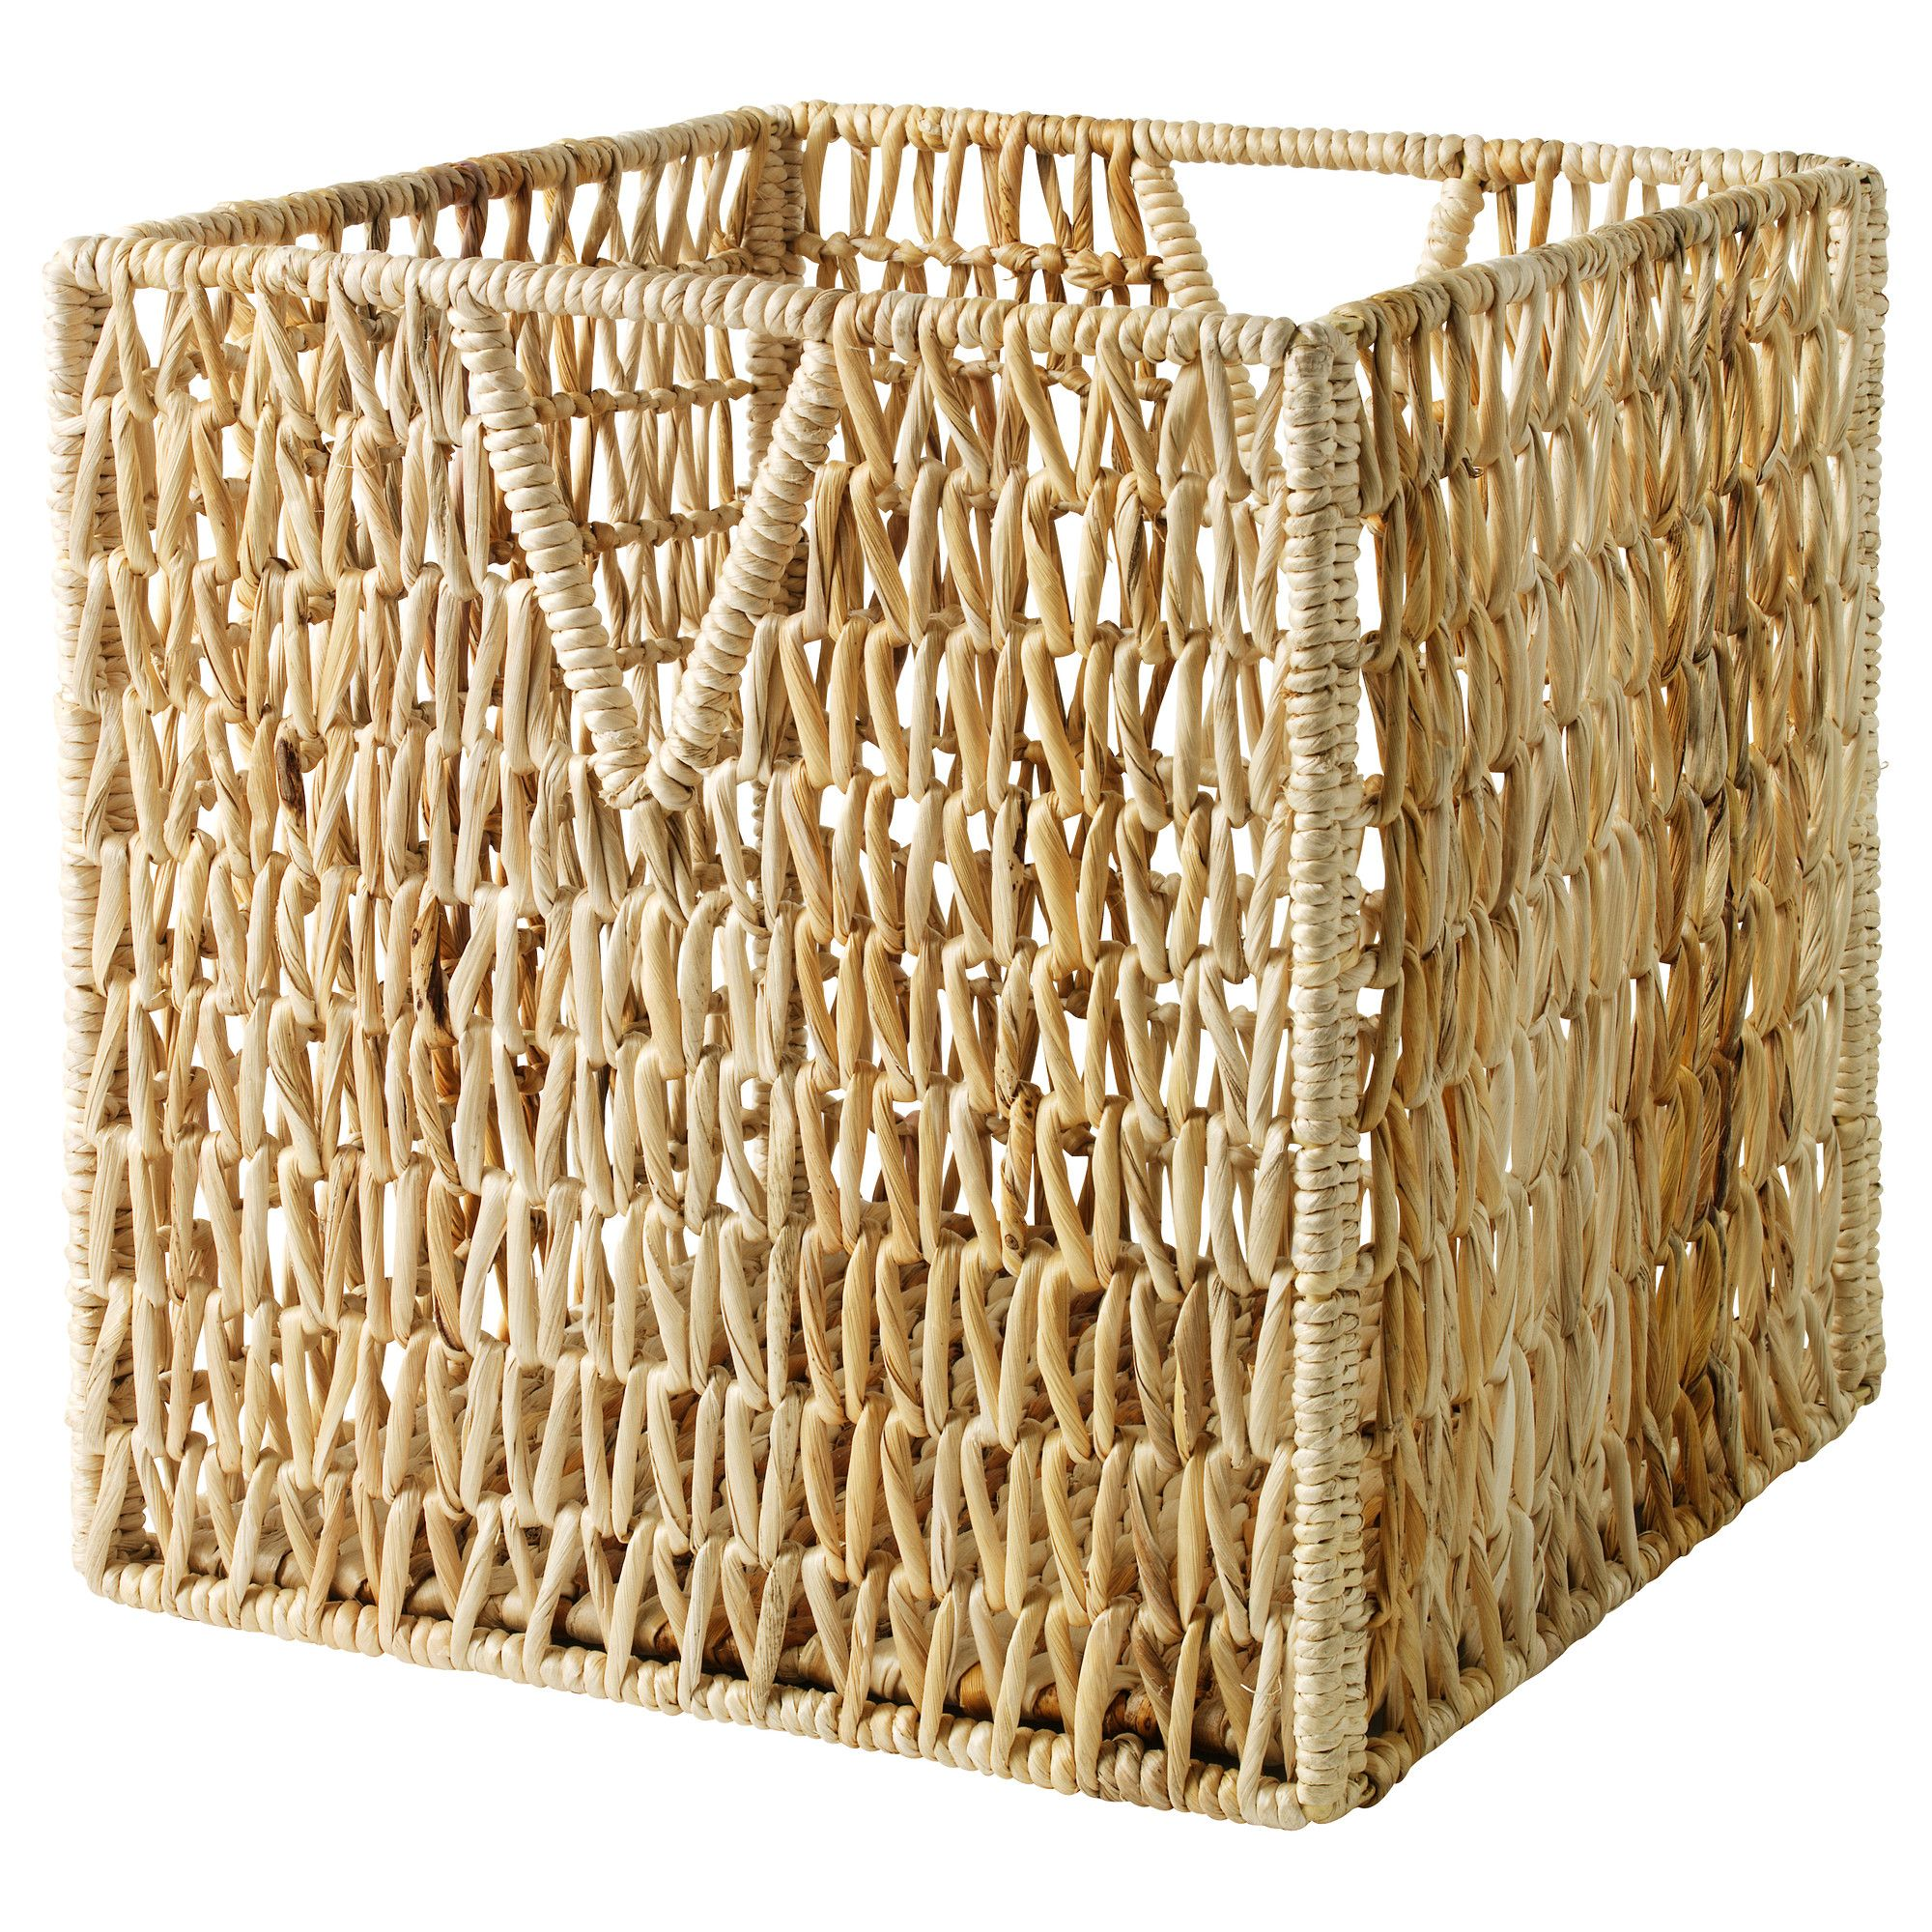 Pjs basket ikea these fit in the cubicles of the expedit for Miroir rond ikea